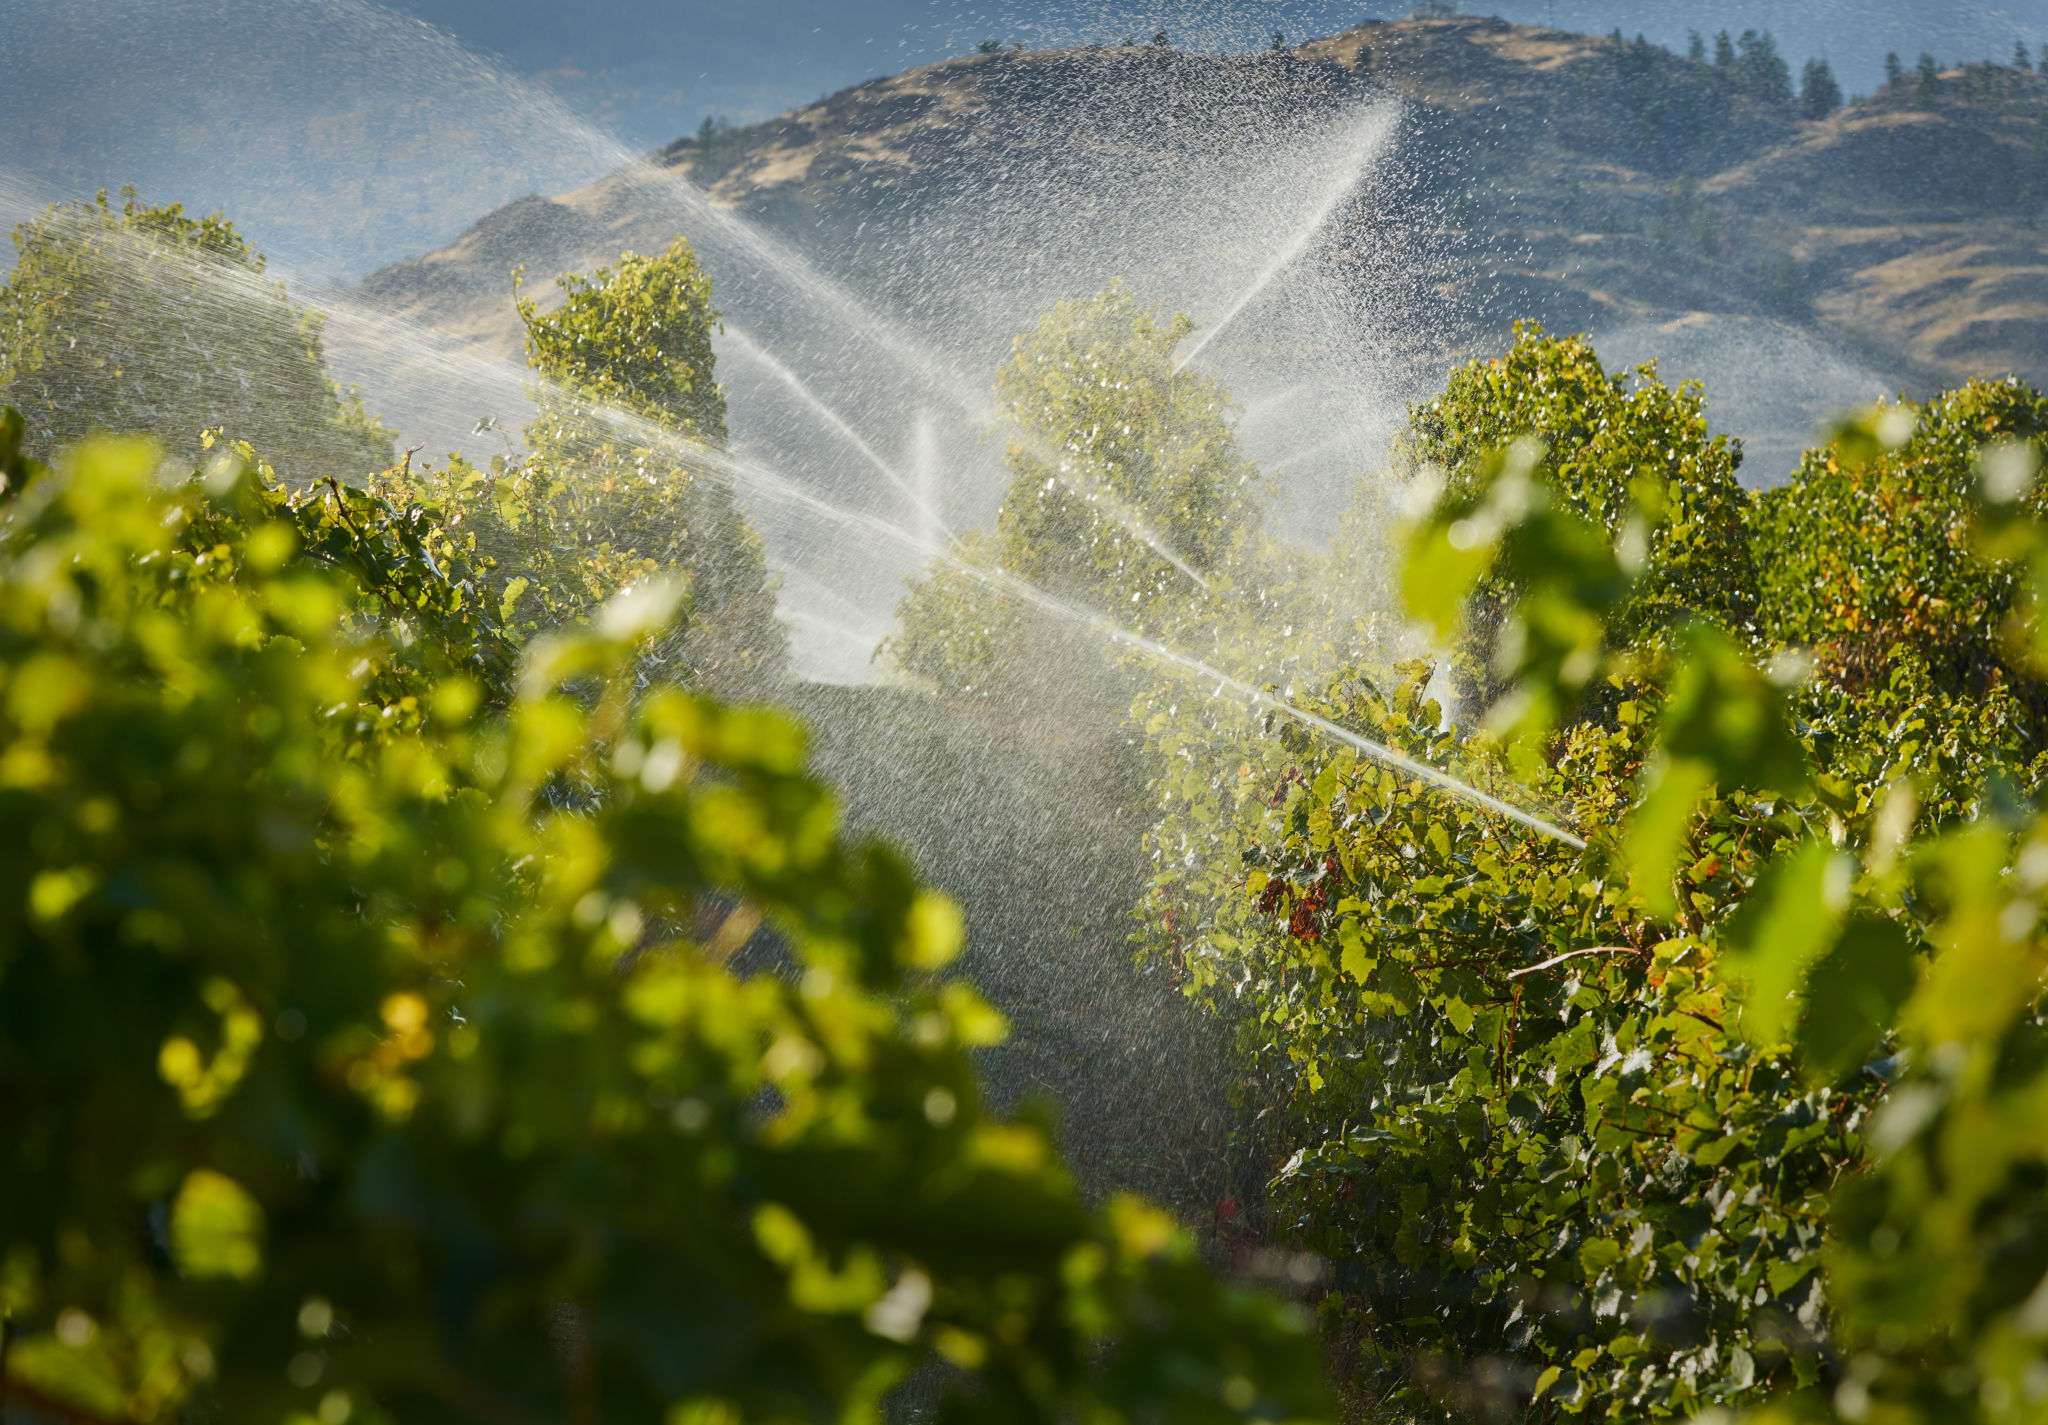 A vineyard gets irrigated at dusk in the Okanagan Valley, British Columbia, Canada.